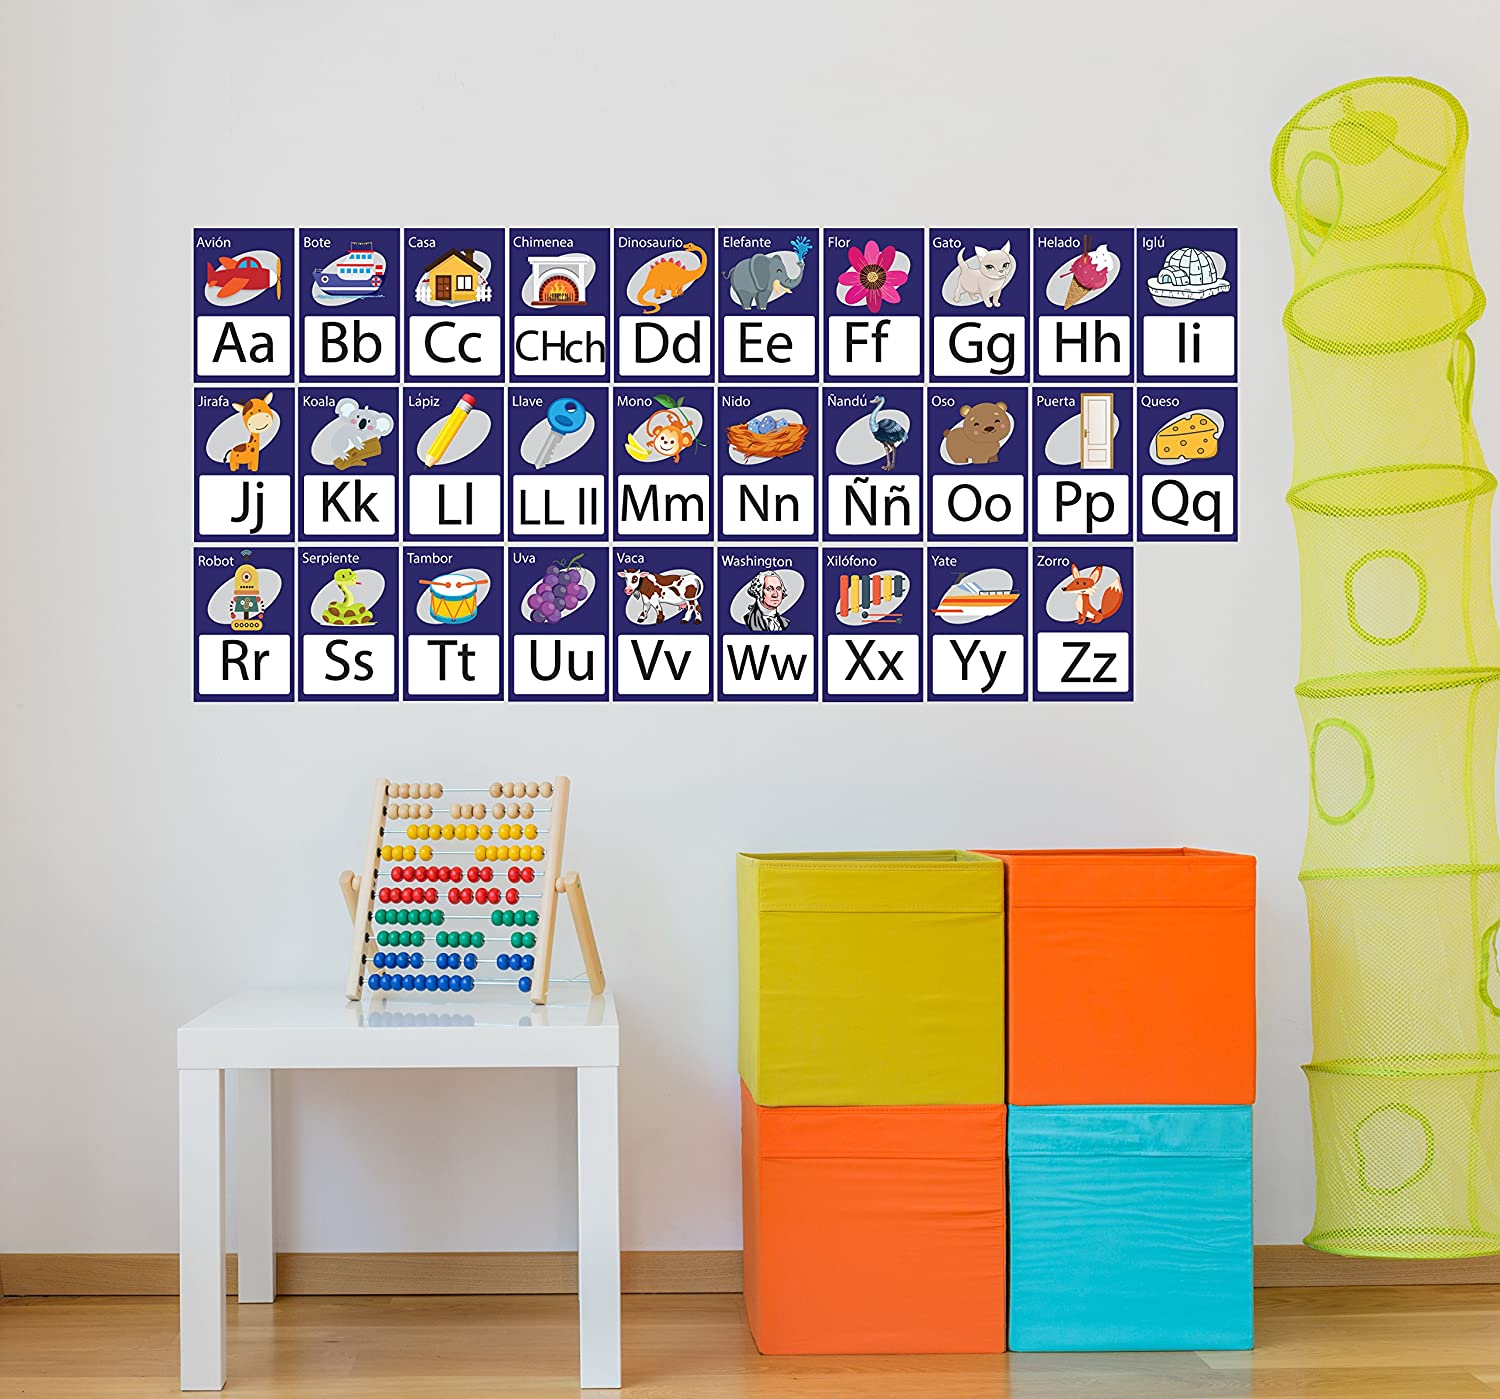 Amazon.com: ManukaDesigns Spanish Alphabet Wall Decal Cards, Gender Neutral Kids Decor, Kids Room Decor CG398: Toys & Games